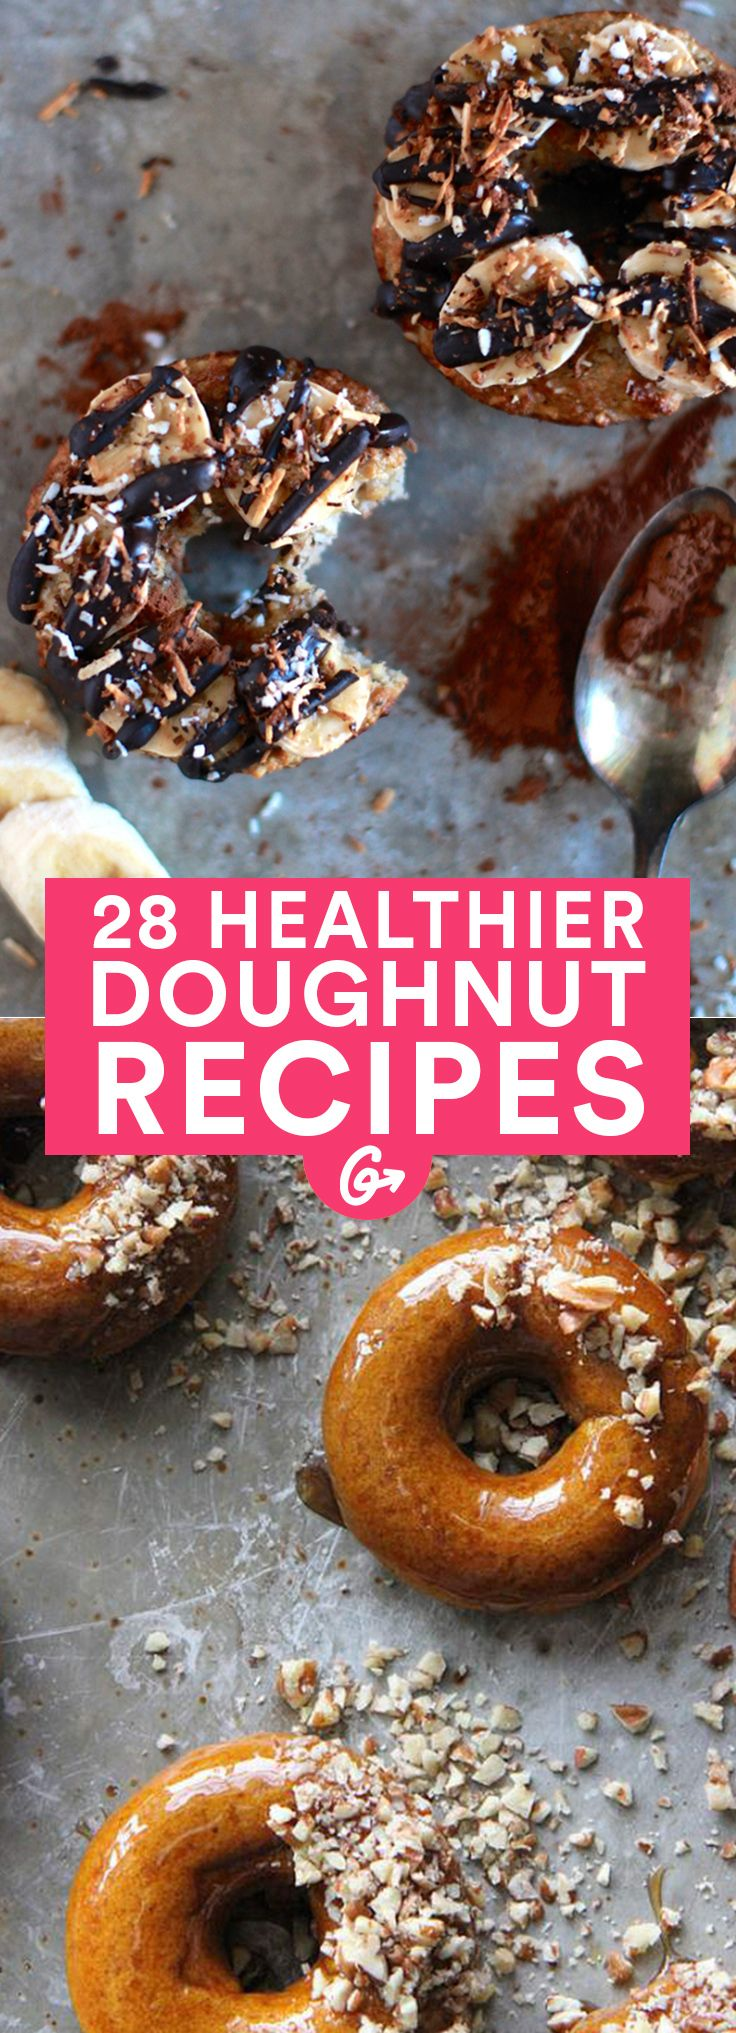 As if you needed another reason to eat cake for breakfast. #healthy #doughnuts #recipes http://greatist.com/health/healthier-donut-recipes